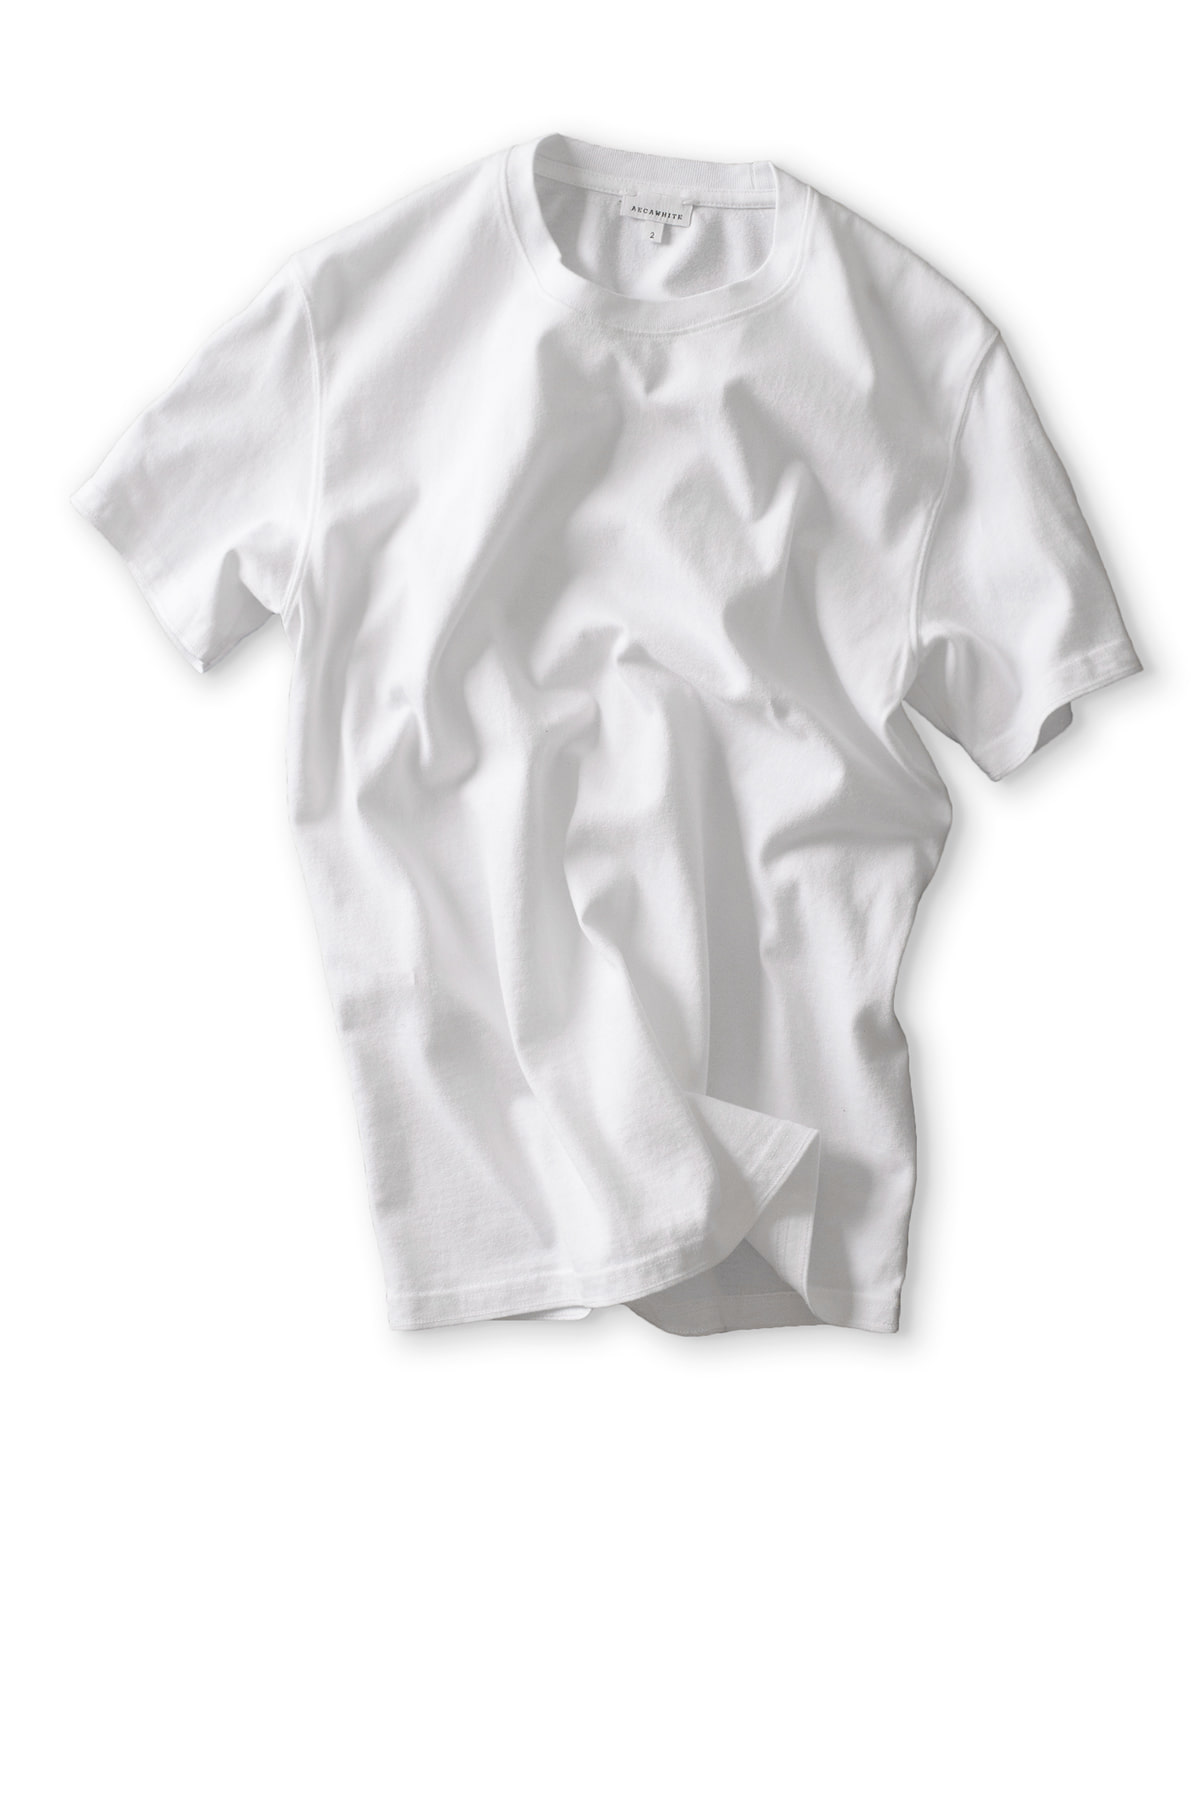 AECA WHITE : Half Sleeve Tee (White)